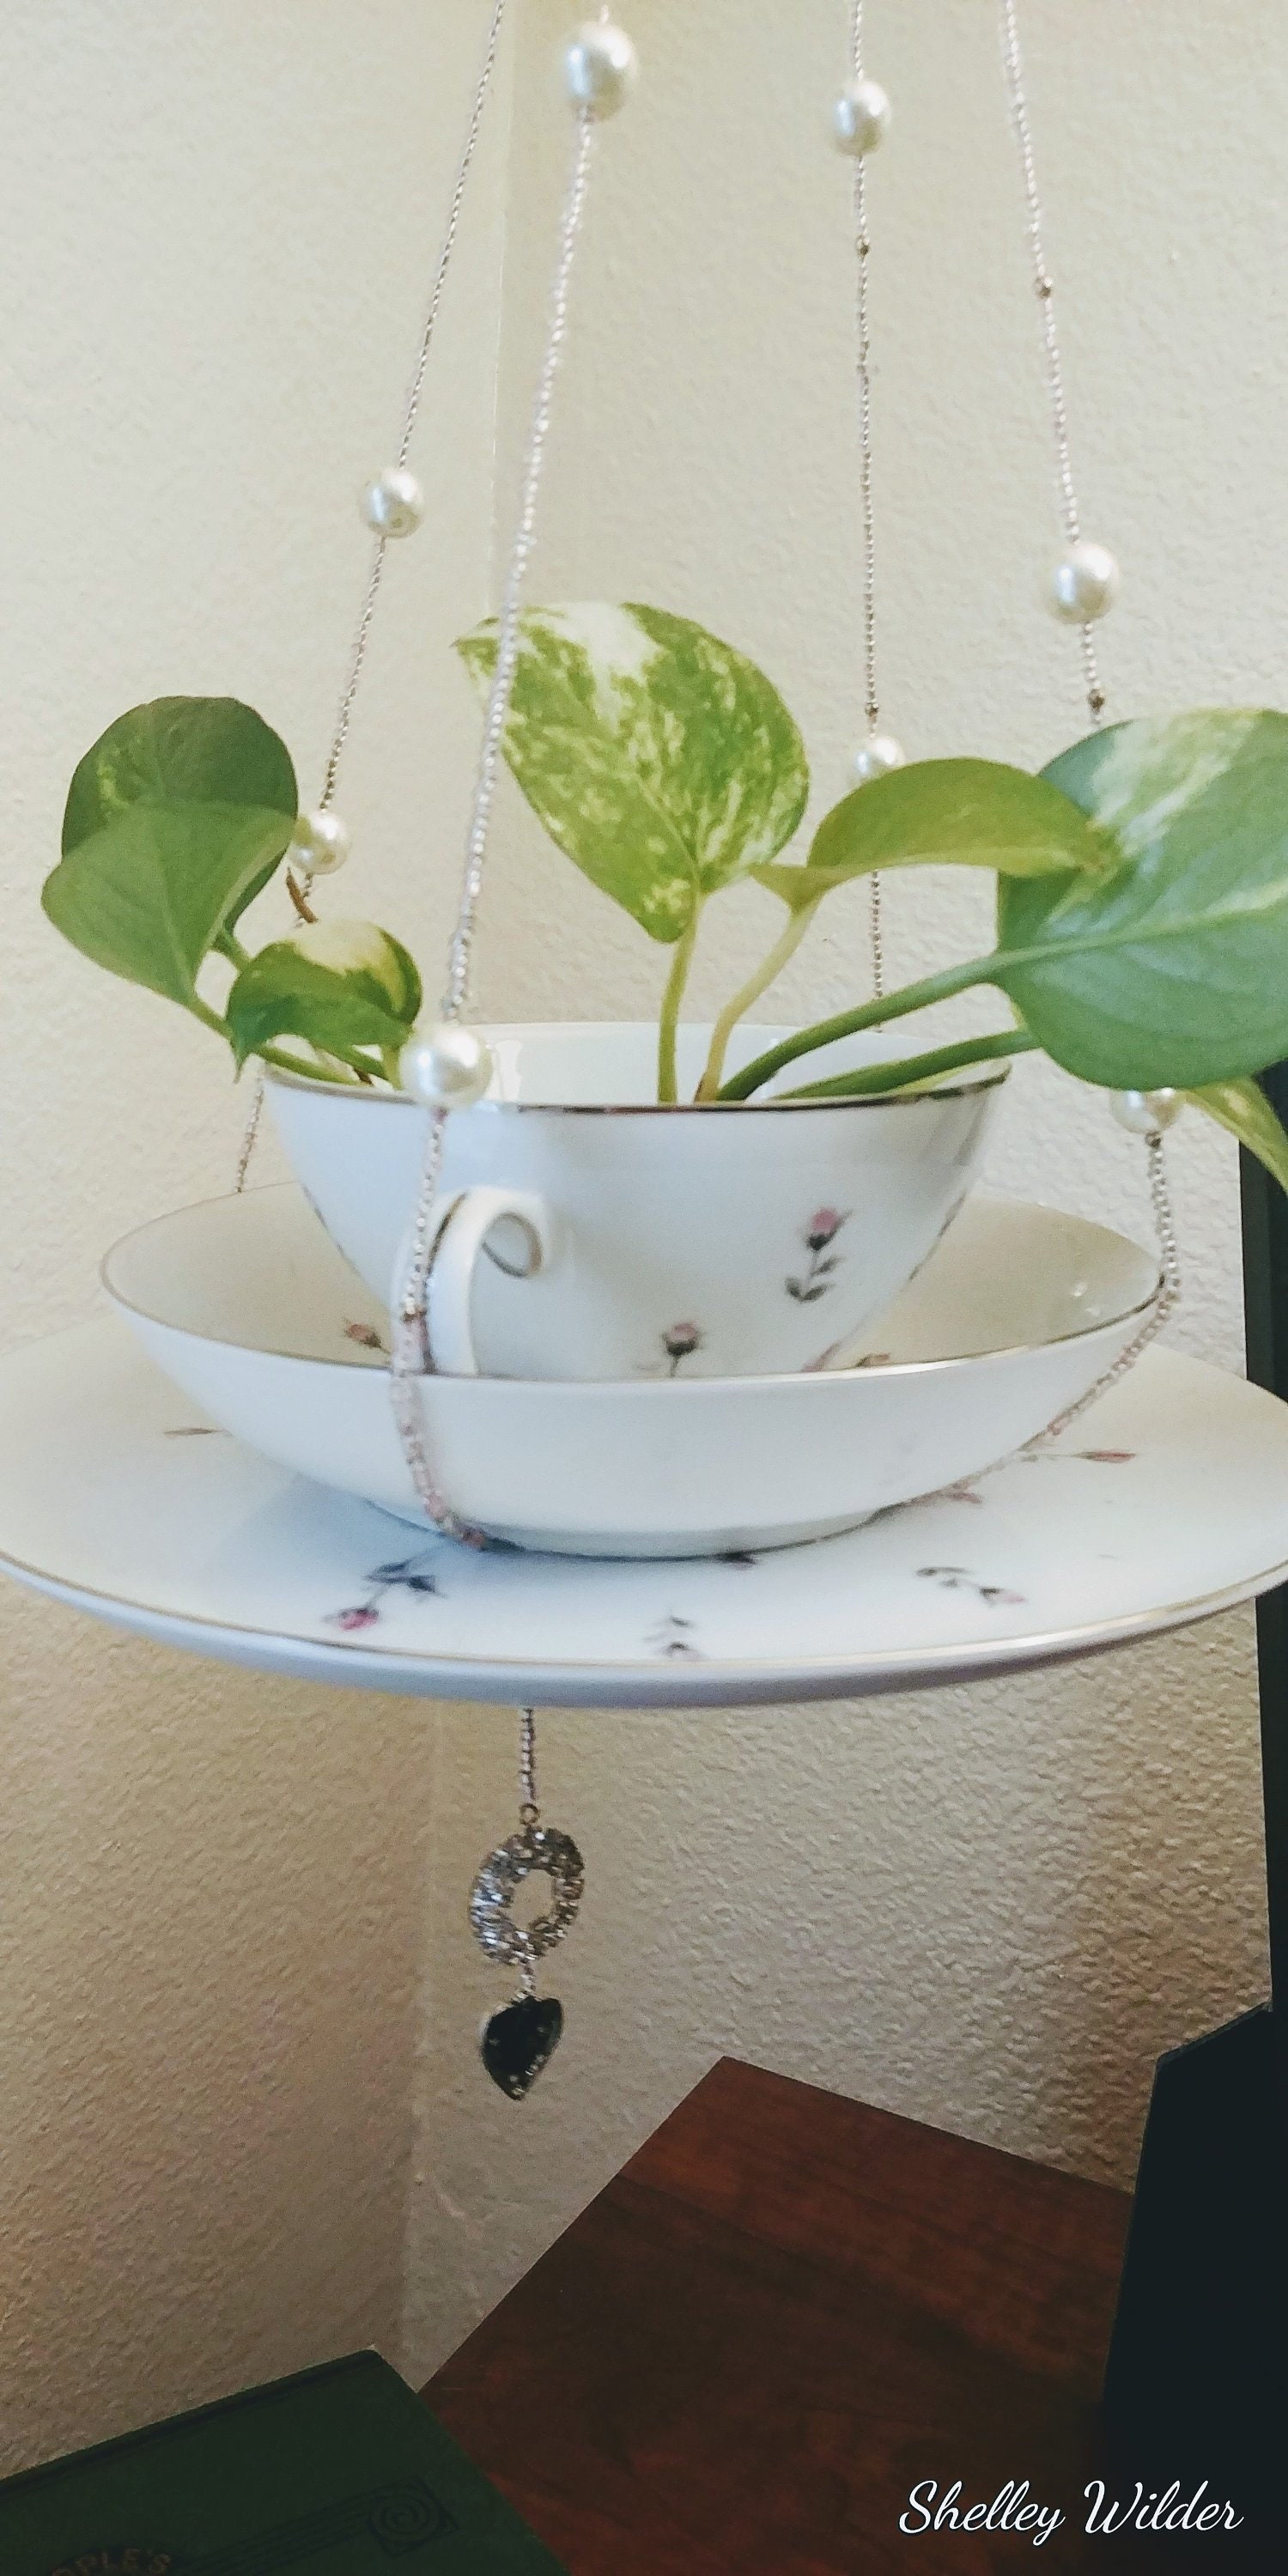 Hand Beaded Three Tier Teacup Art Hanging Planter With Breast Cancer